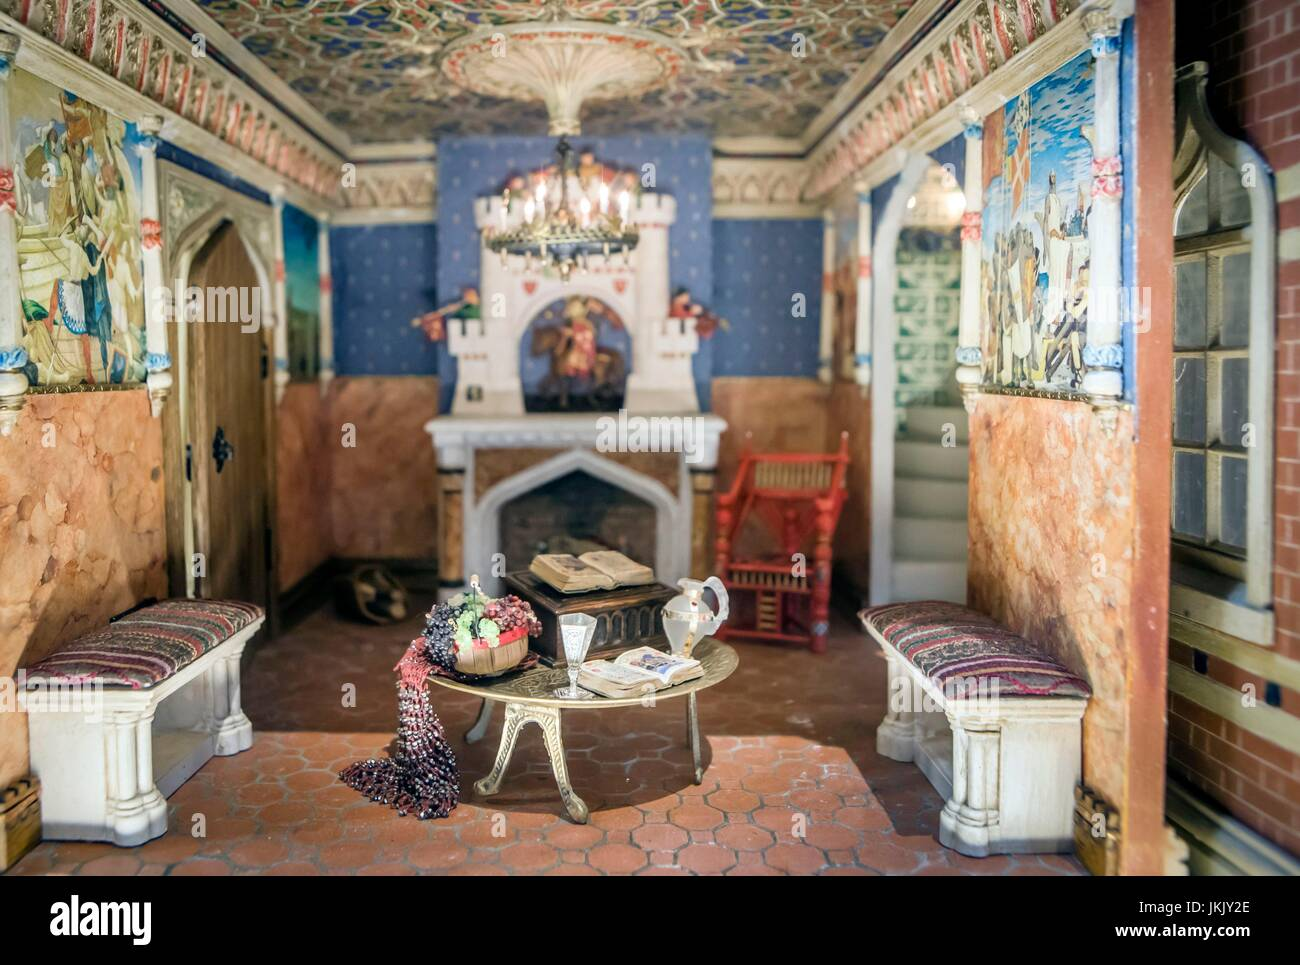 A Room In A Dolls House Created By Miniaturist Jane Fiddick, At Newby Hall,  Yorkshire